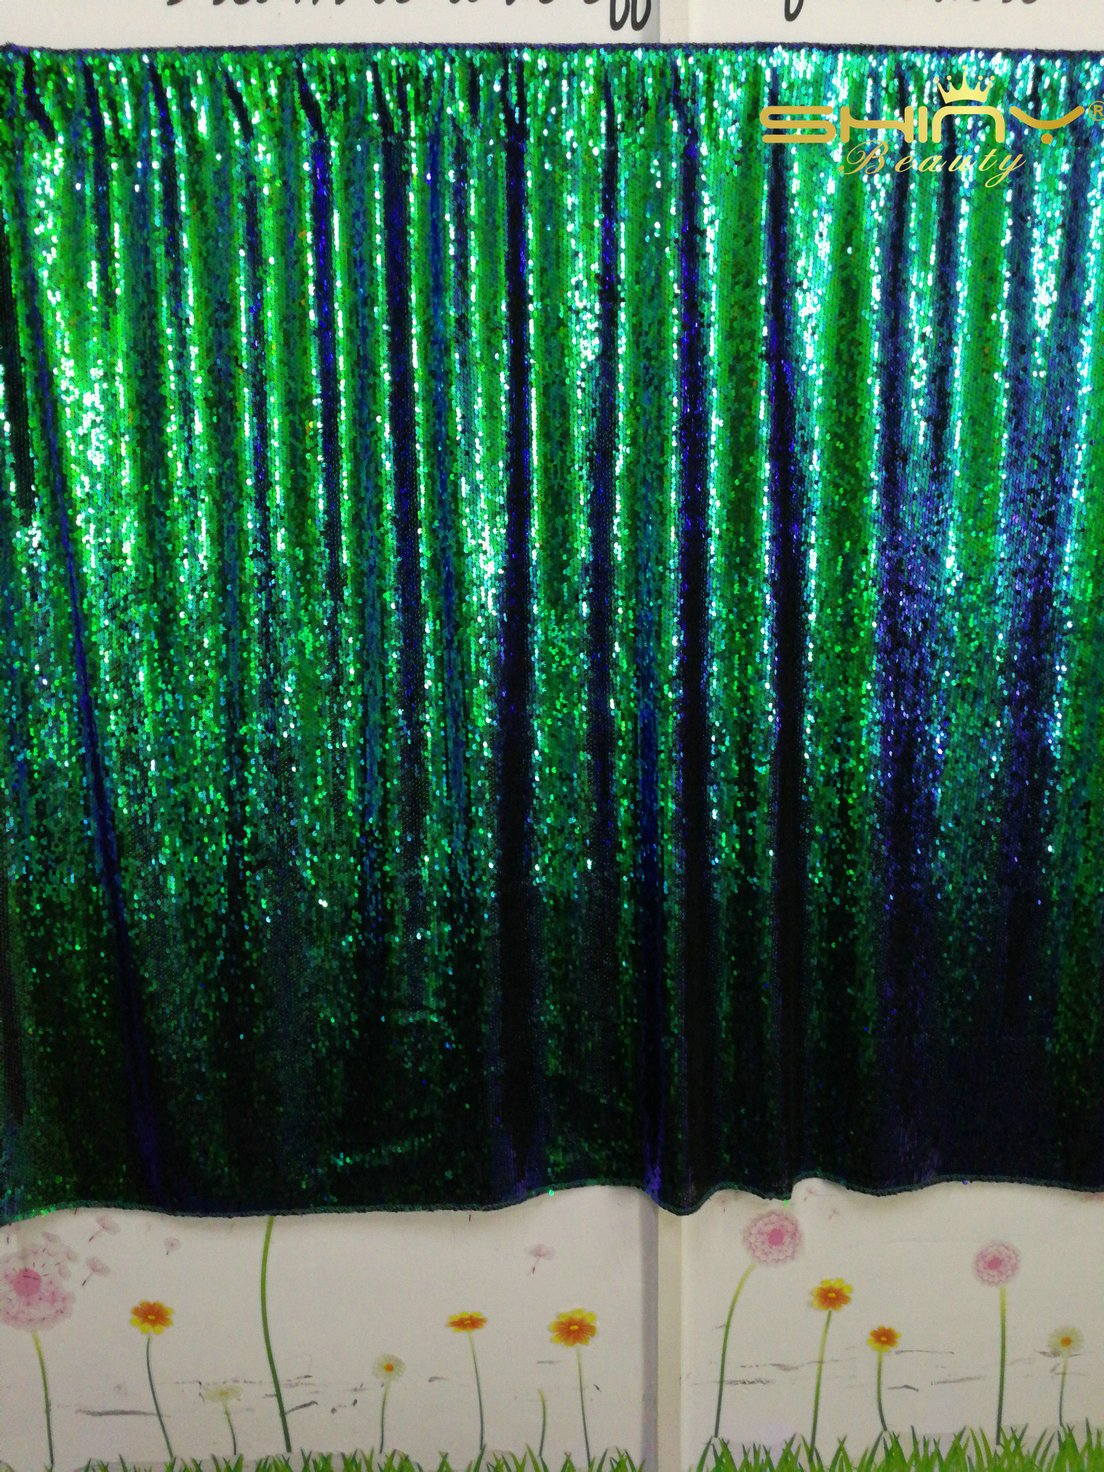 ShinyBeauty 10FTx10FT-Mermaid-Green&Black-Sequin Curtain Backdrop,Reversible Sequin Fabirc Photography Backdrops For Photo/Wedding/Party/Event/Prom/Birthday